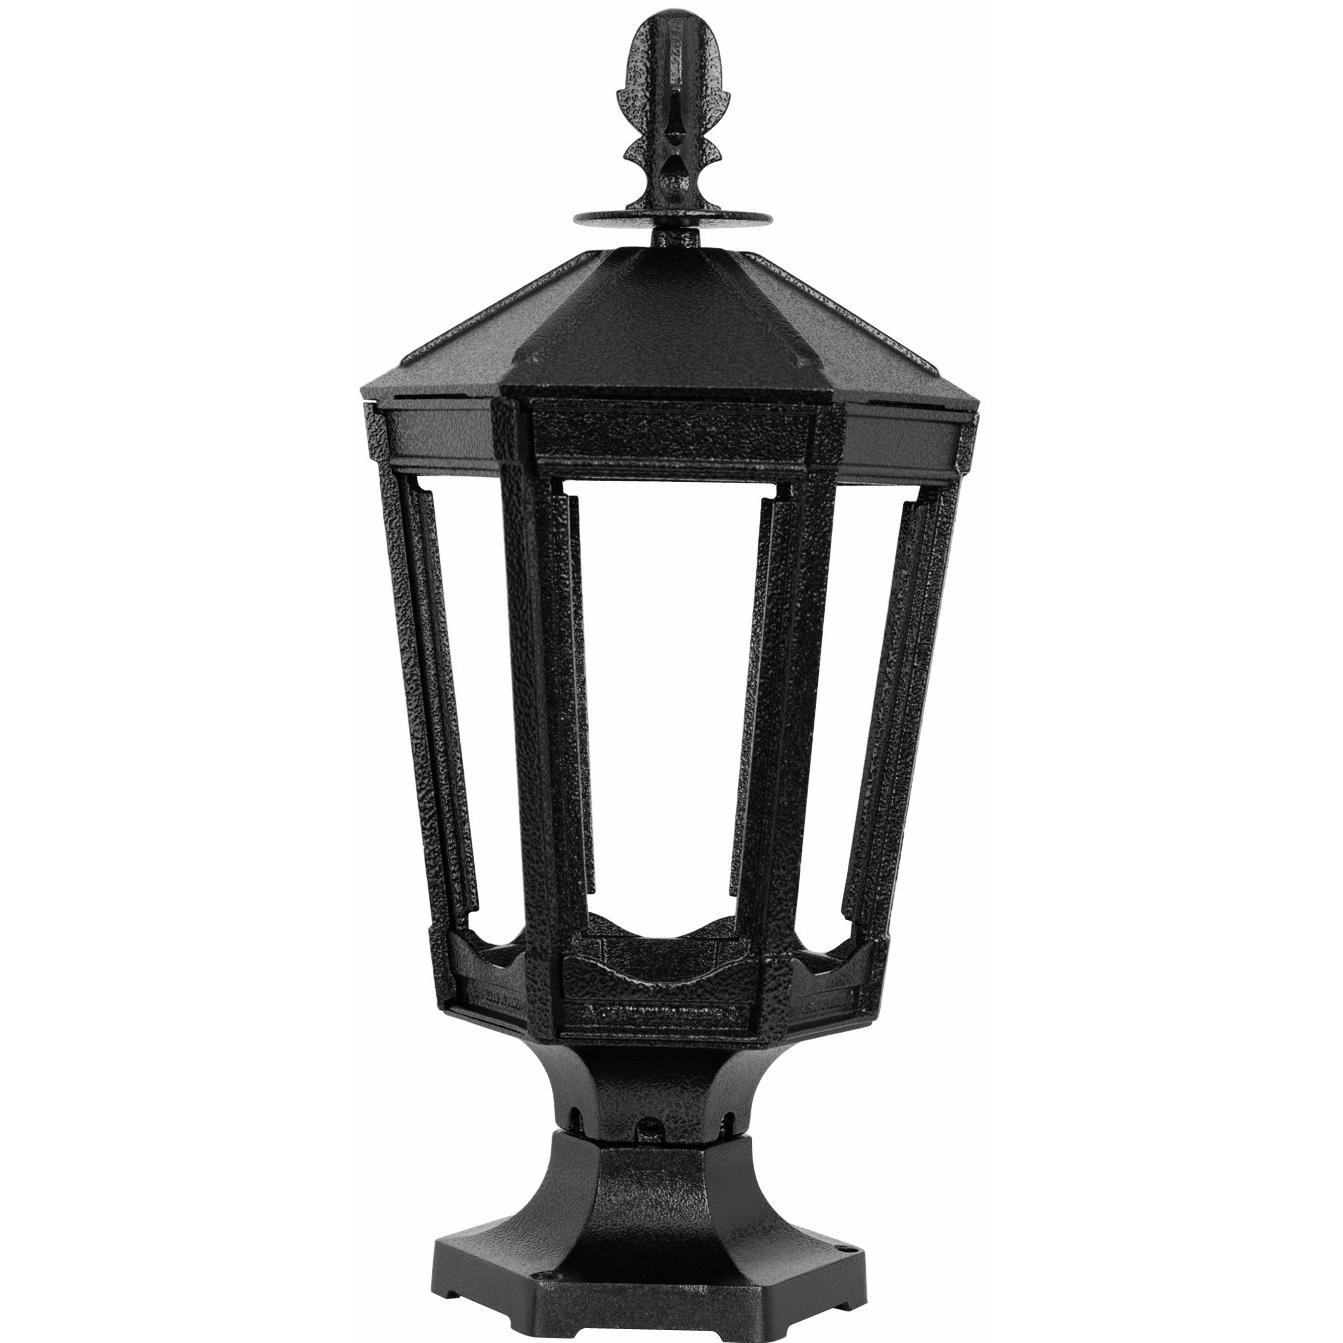 Picture of American Gas Lamp Works GL1000 Cast Aluminum Manual Ignition Natural Gas Light With Dual Mantle Burner And Pedestal Mount